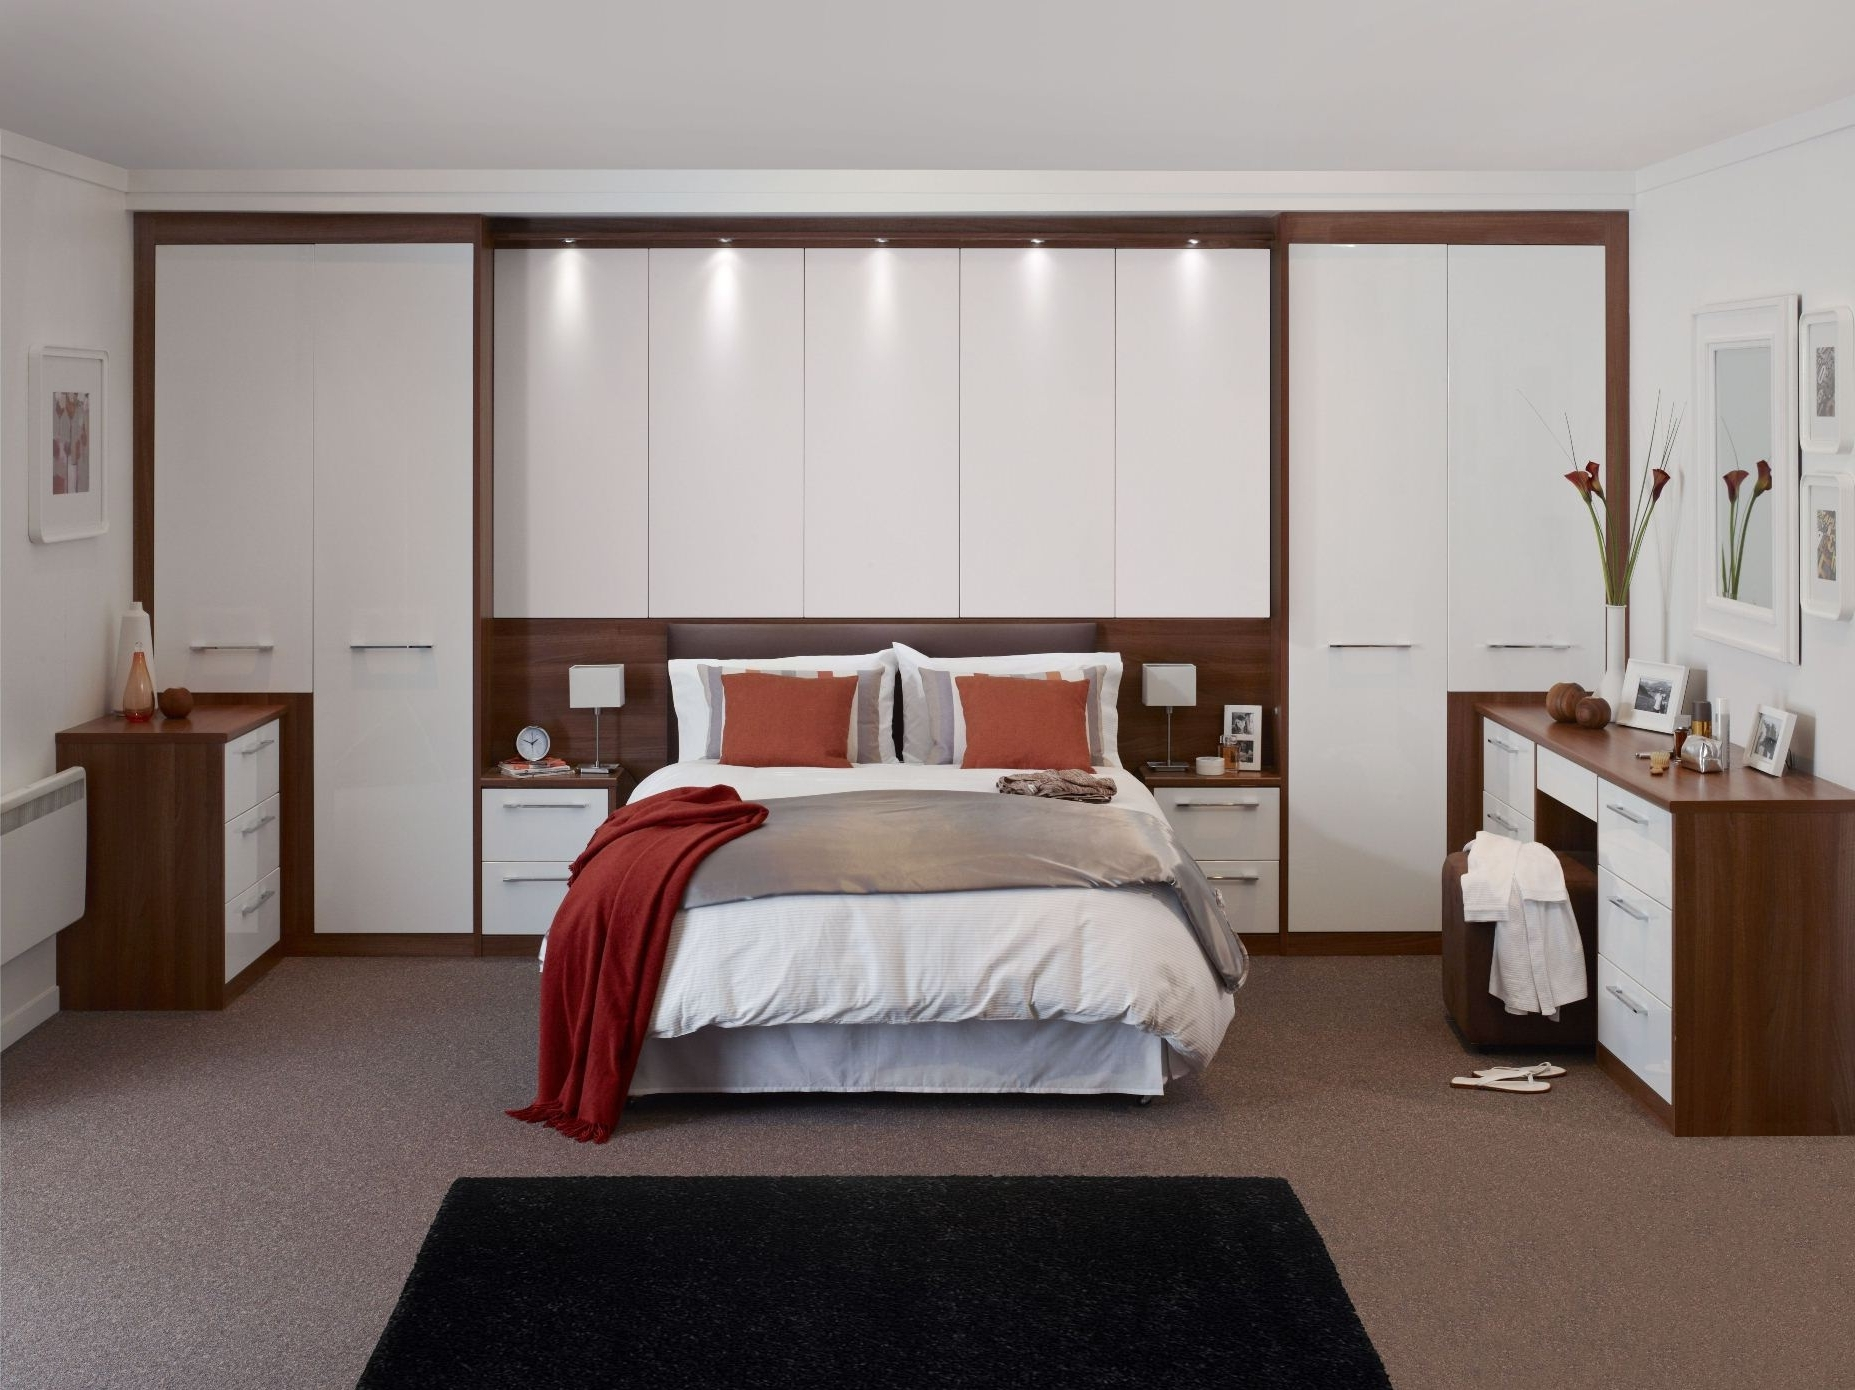 Well Known Over Bed Wardrobes Sets Within 22 Fitted Bedroom Wardrobes Design To Create A Wow Moment (View 8 of 15)